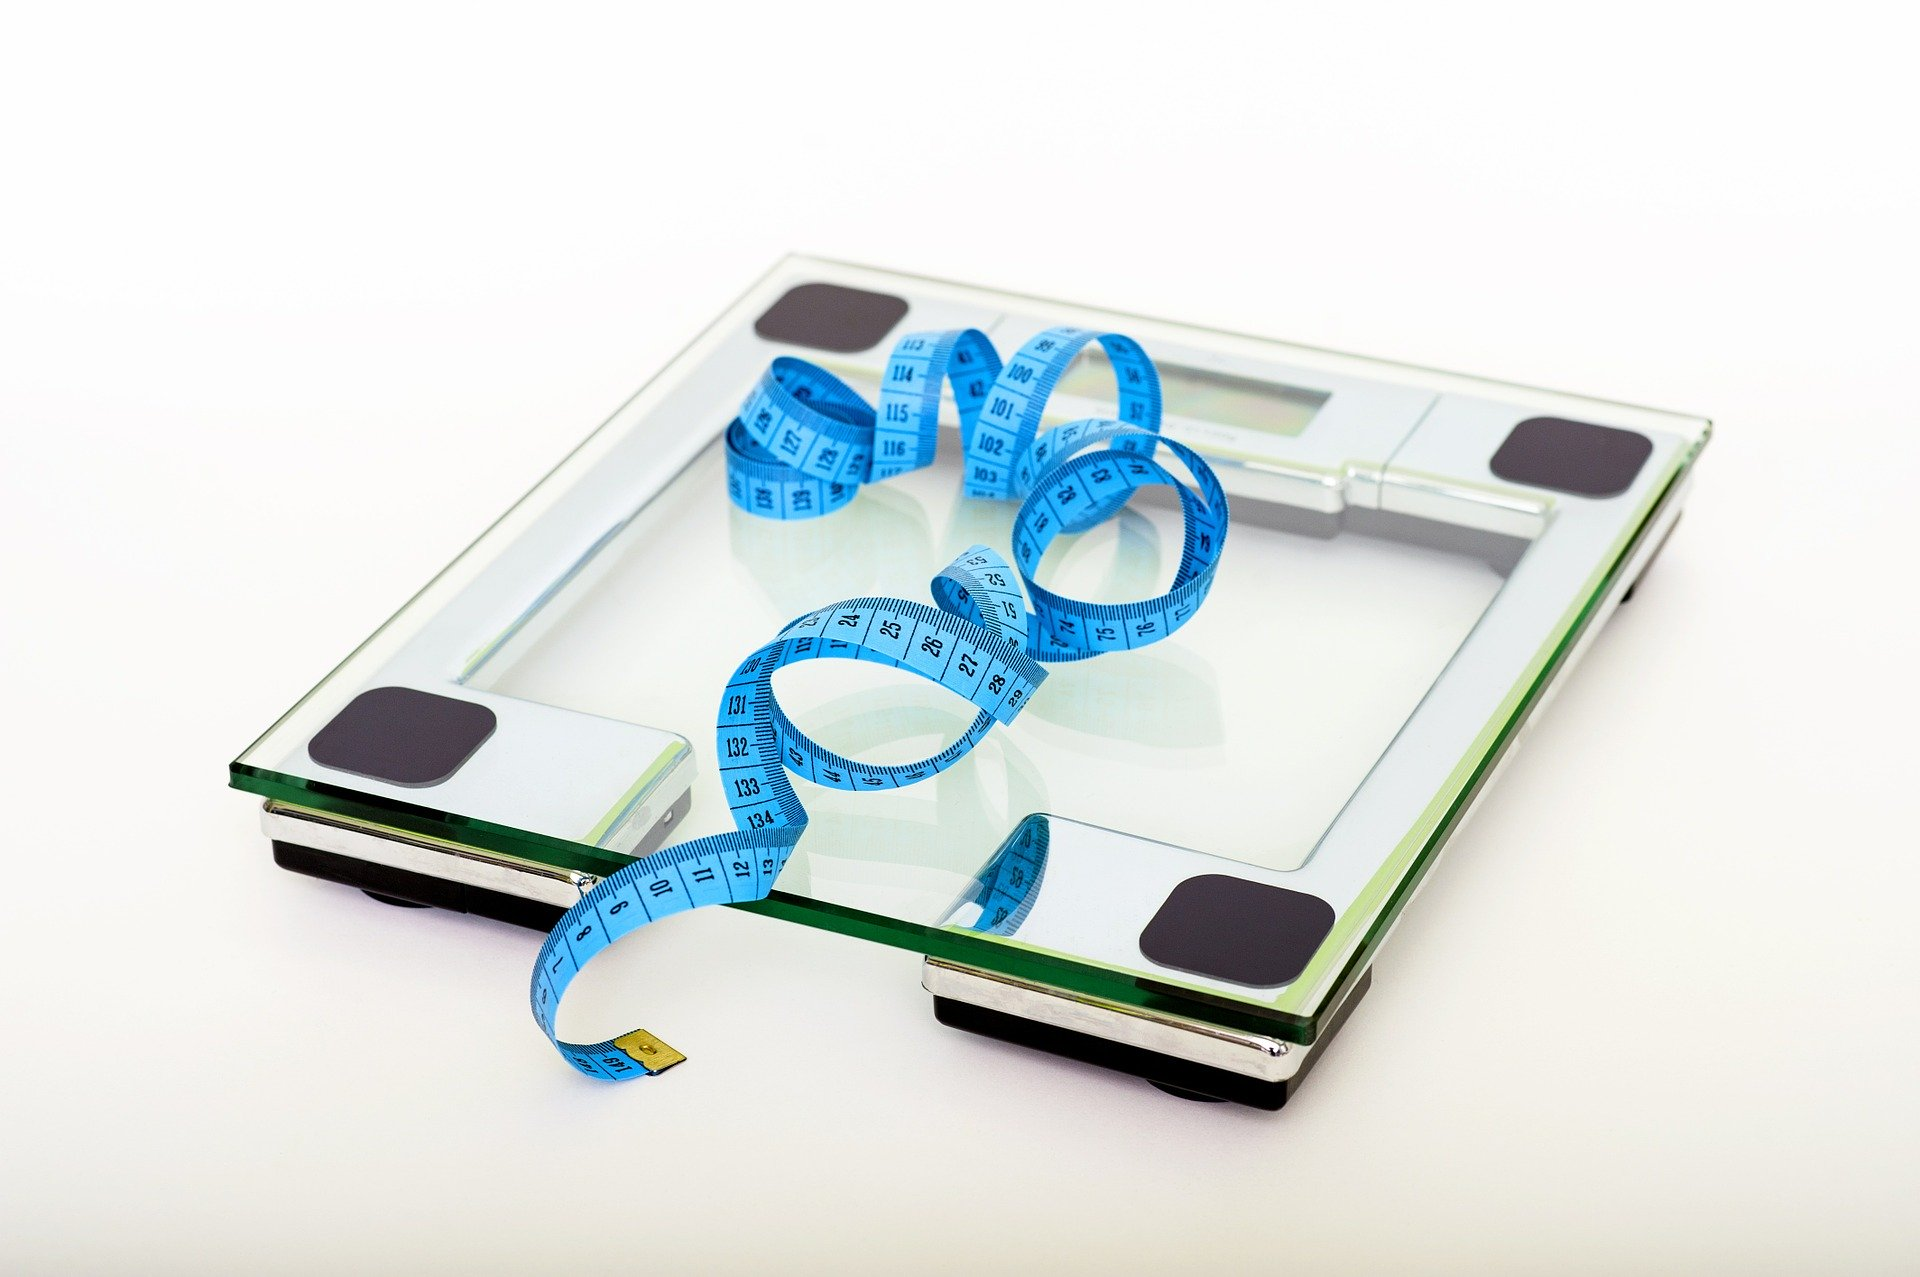 measuring tape and scale to track bariatric surgery results